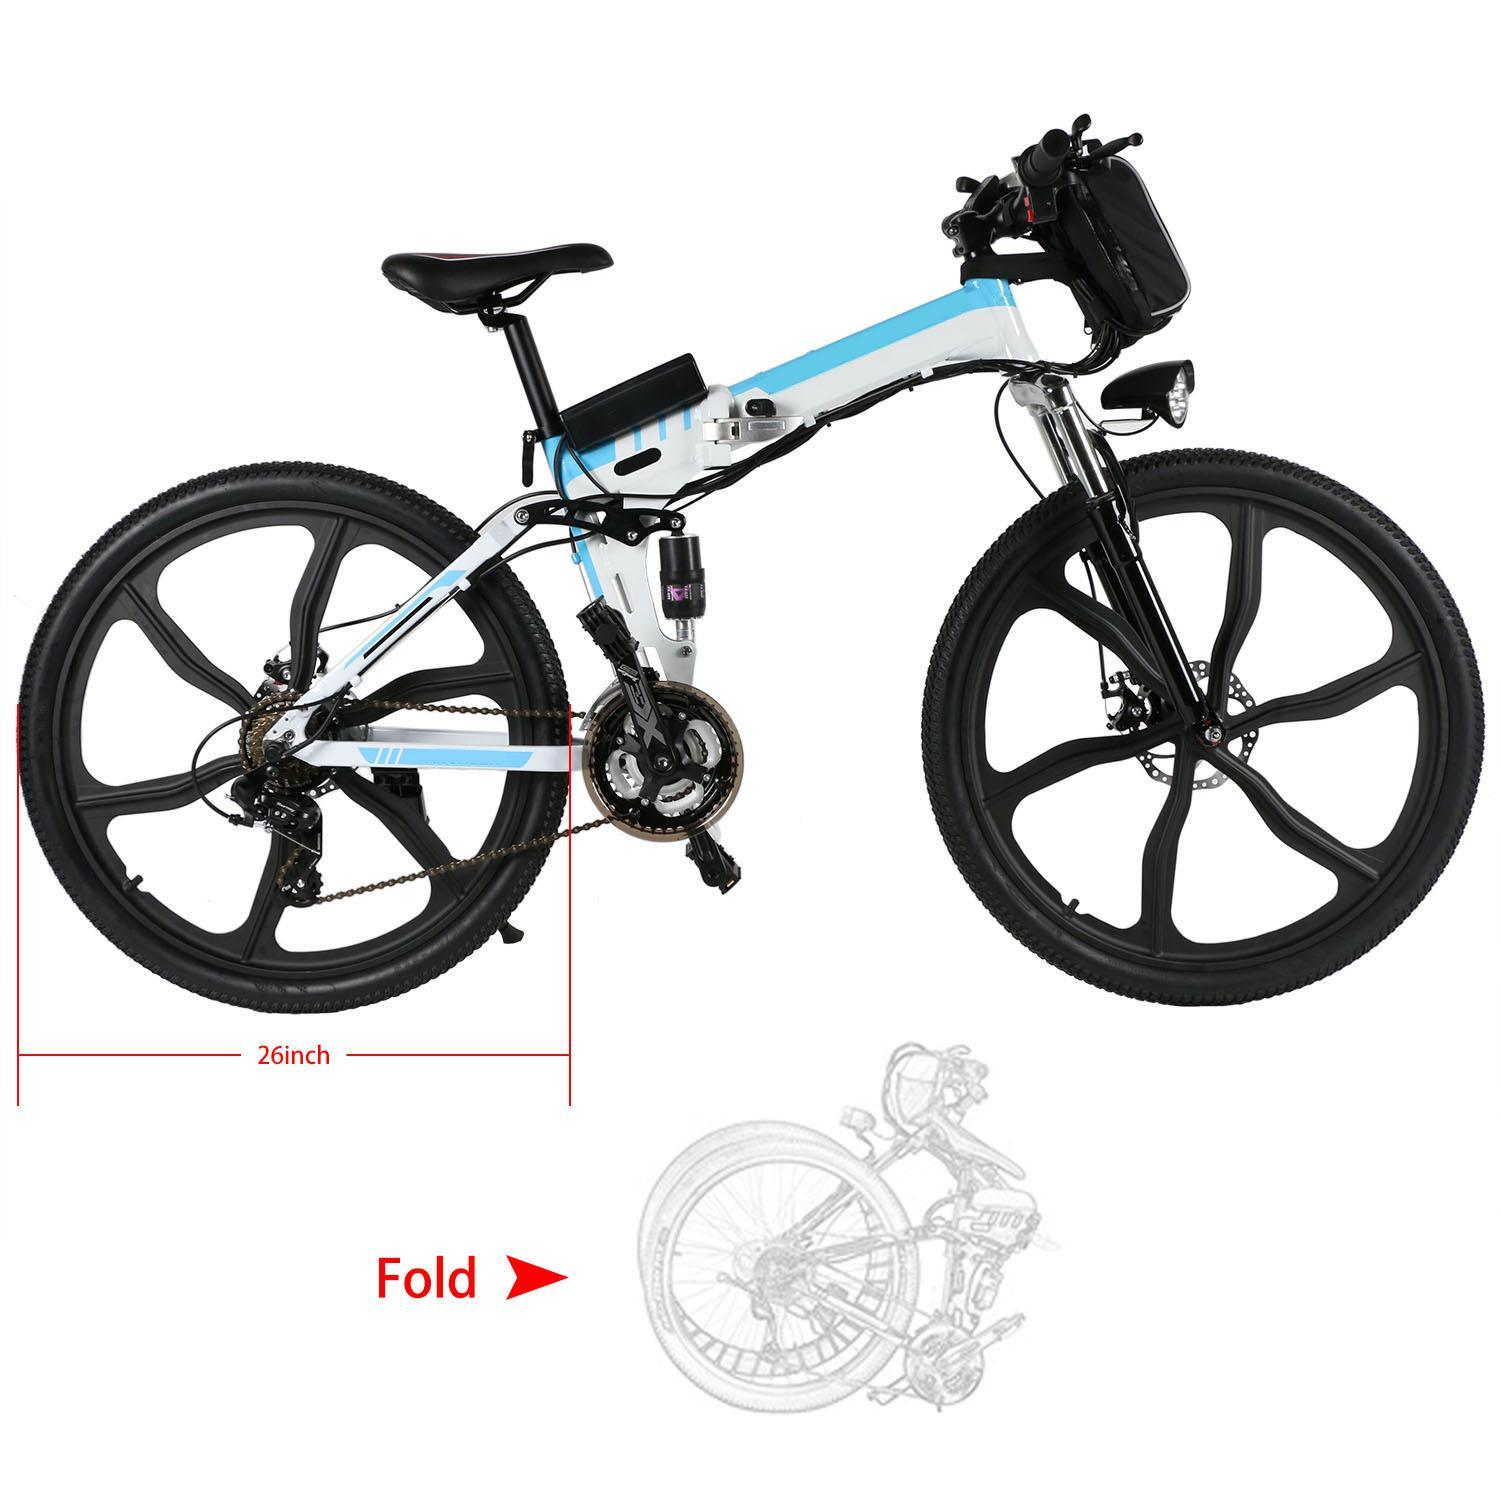 26inch 21 Speed Foldable Electric Power Mountain Bicycle Lithium-Ion Battery 3